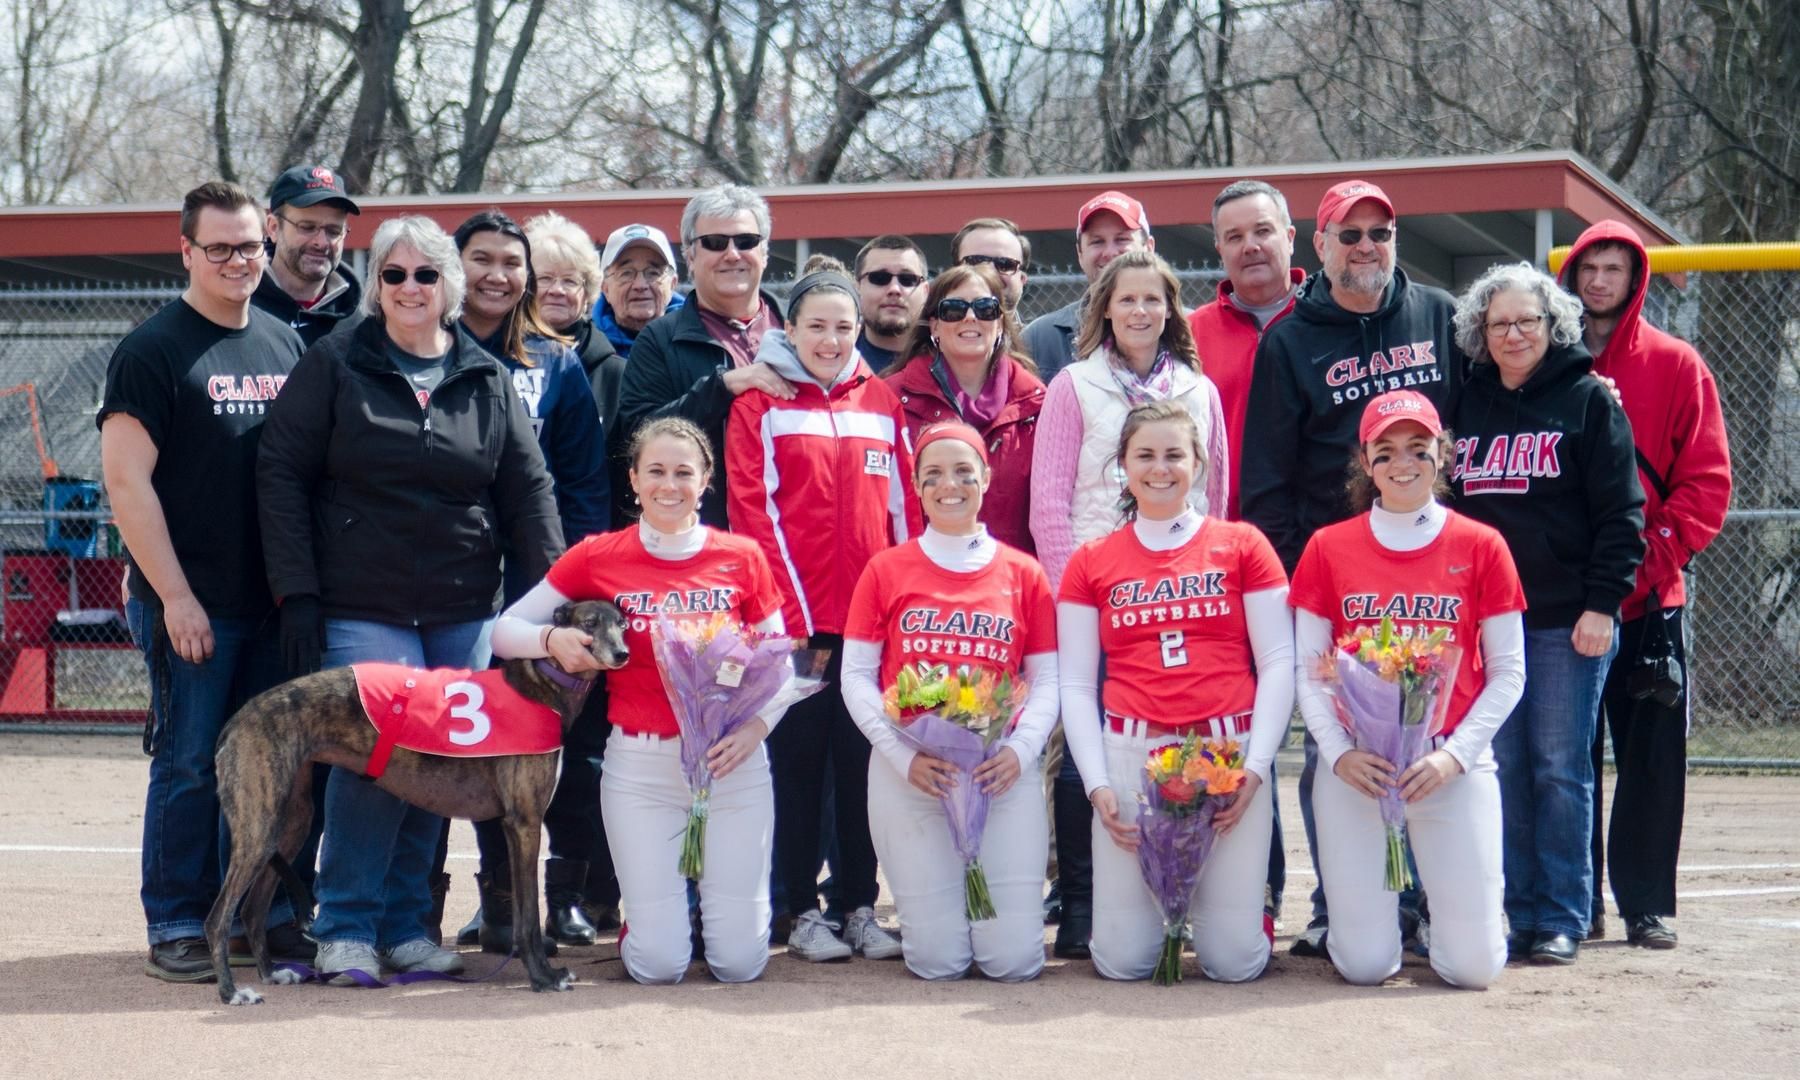 Cougars Shut Out Emerson in Game Two on Senior Day